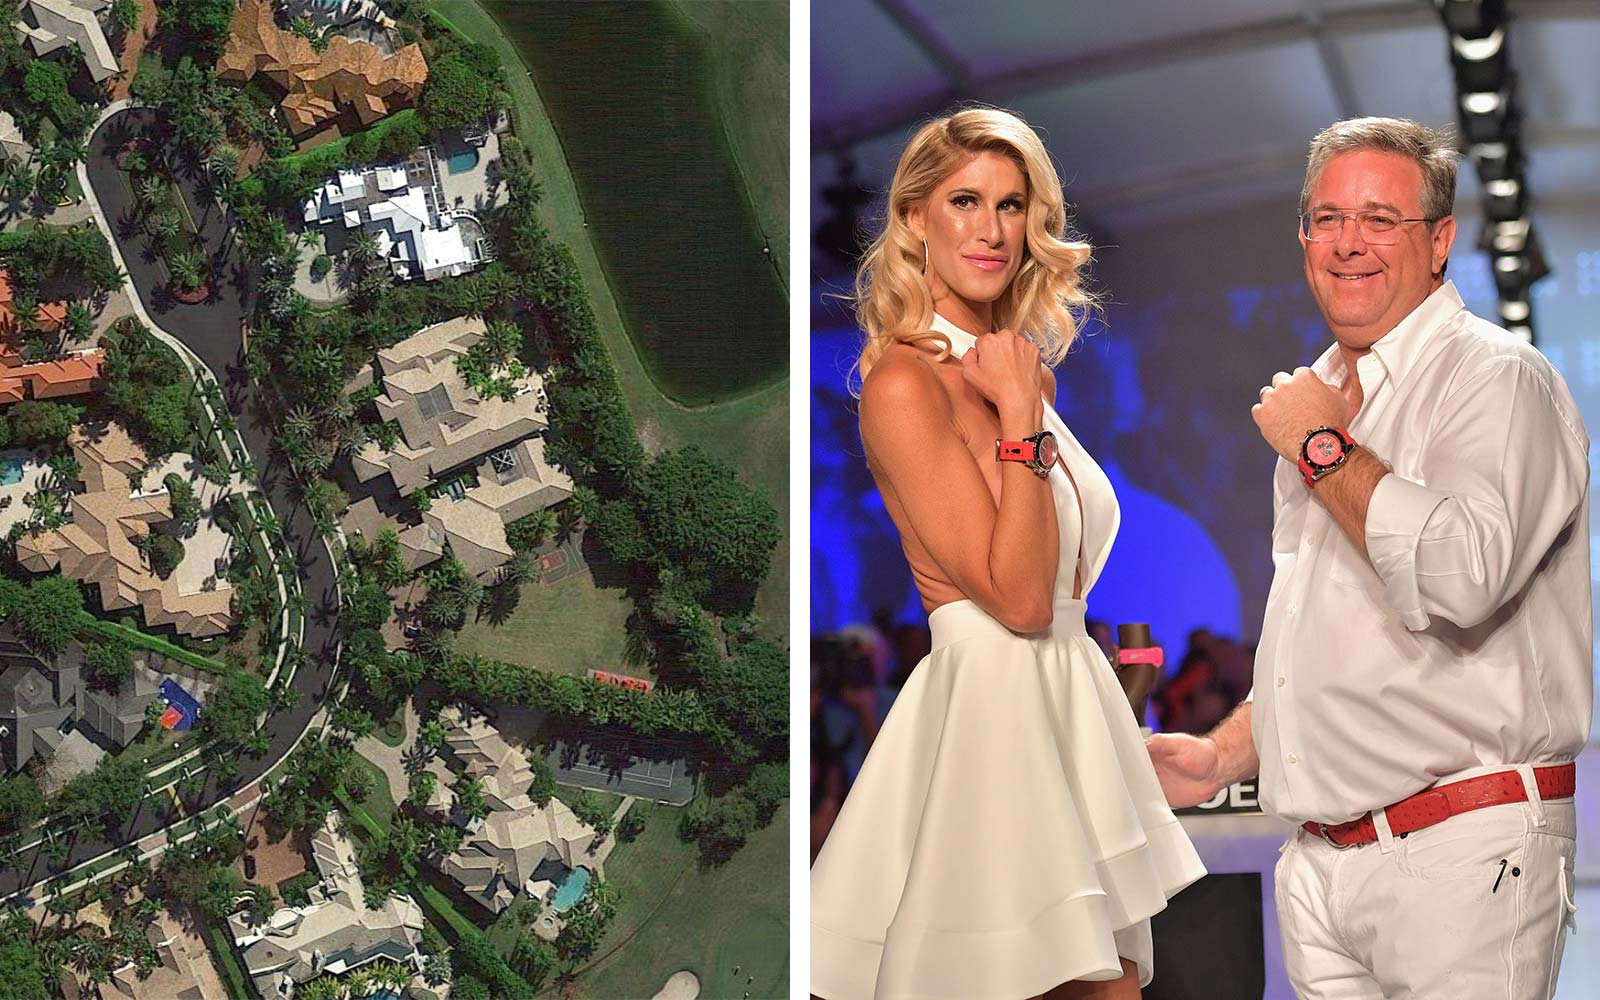 Florida Millionaire Welcomes 70 Foster Kids Into His Mansion After Hurricane Irma